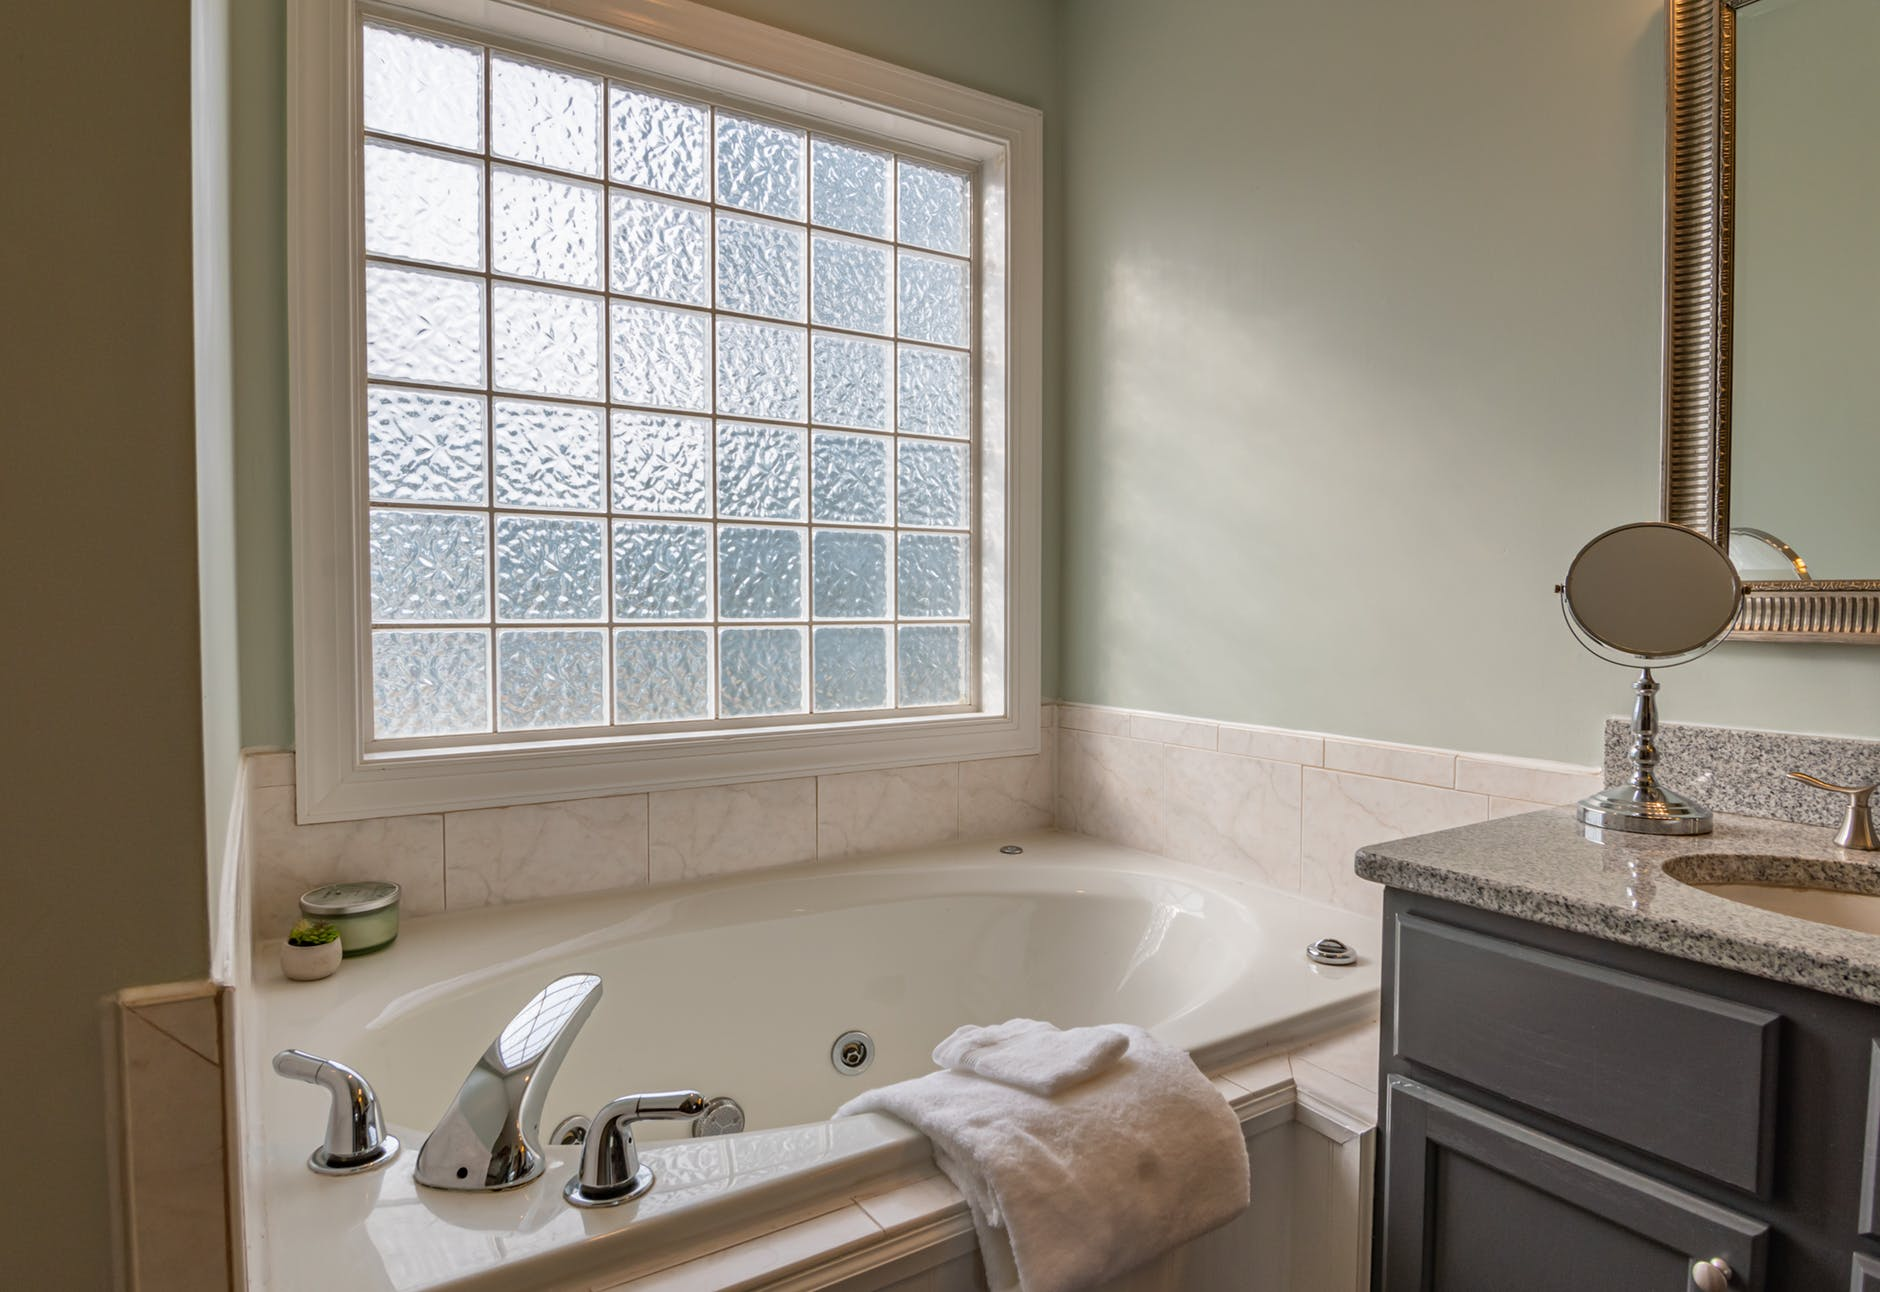 A large bath next to a window and sink